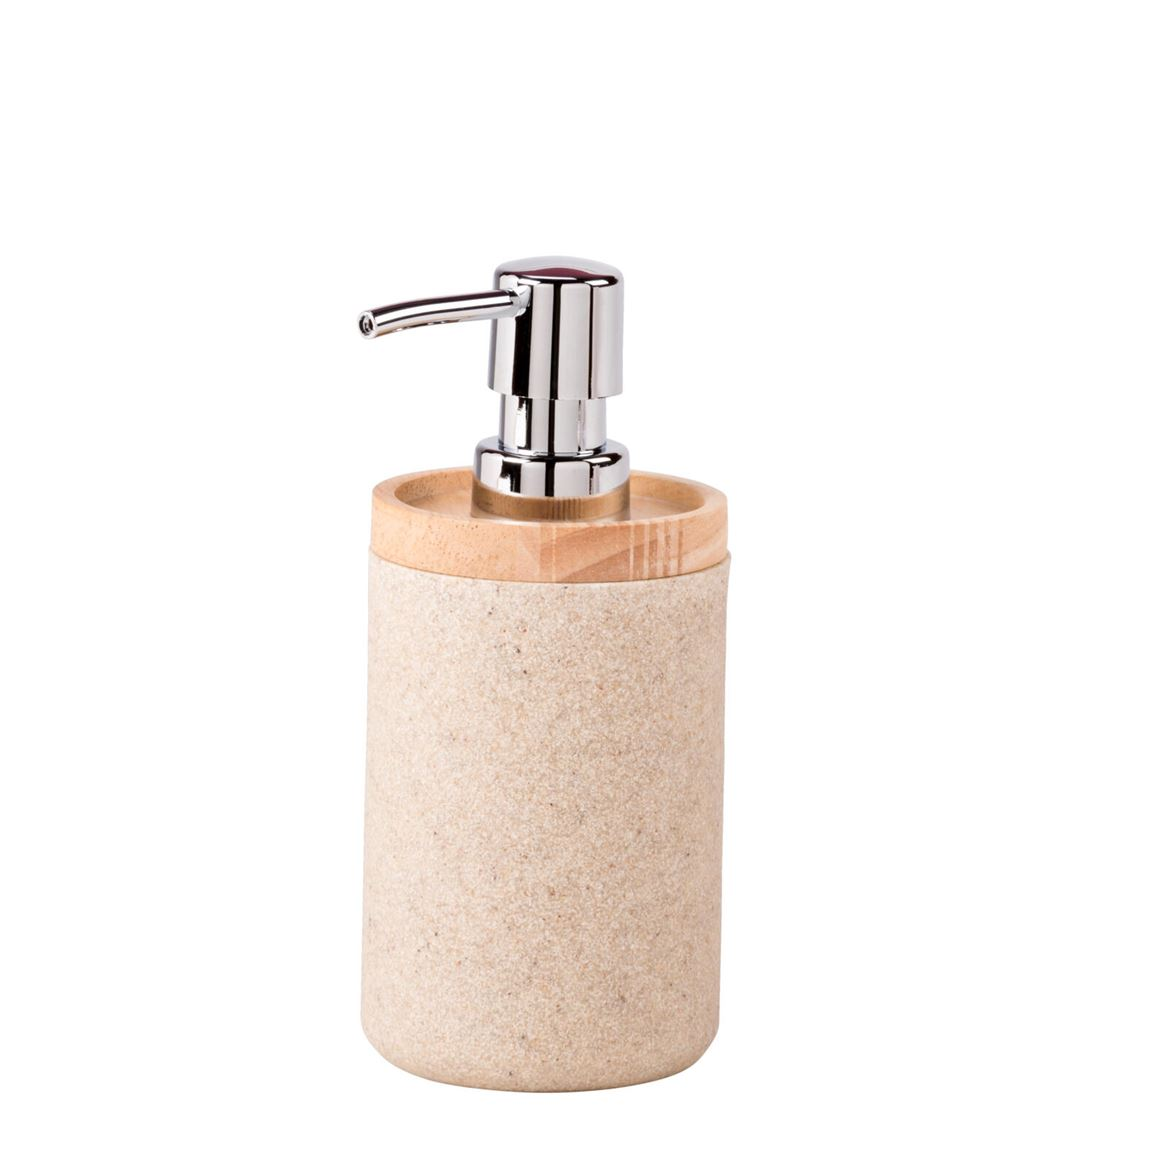 NEW RESIN  Distributeur savon naturel H 17,2 cm; Ø 8 cm_new-resin--distributeur-savon-naturel-h-17,2-cm;-ø-8-cm